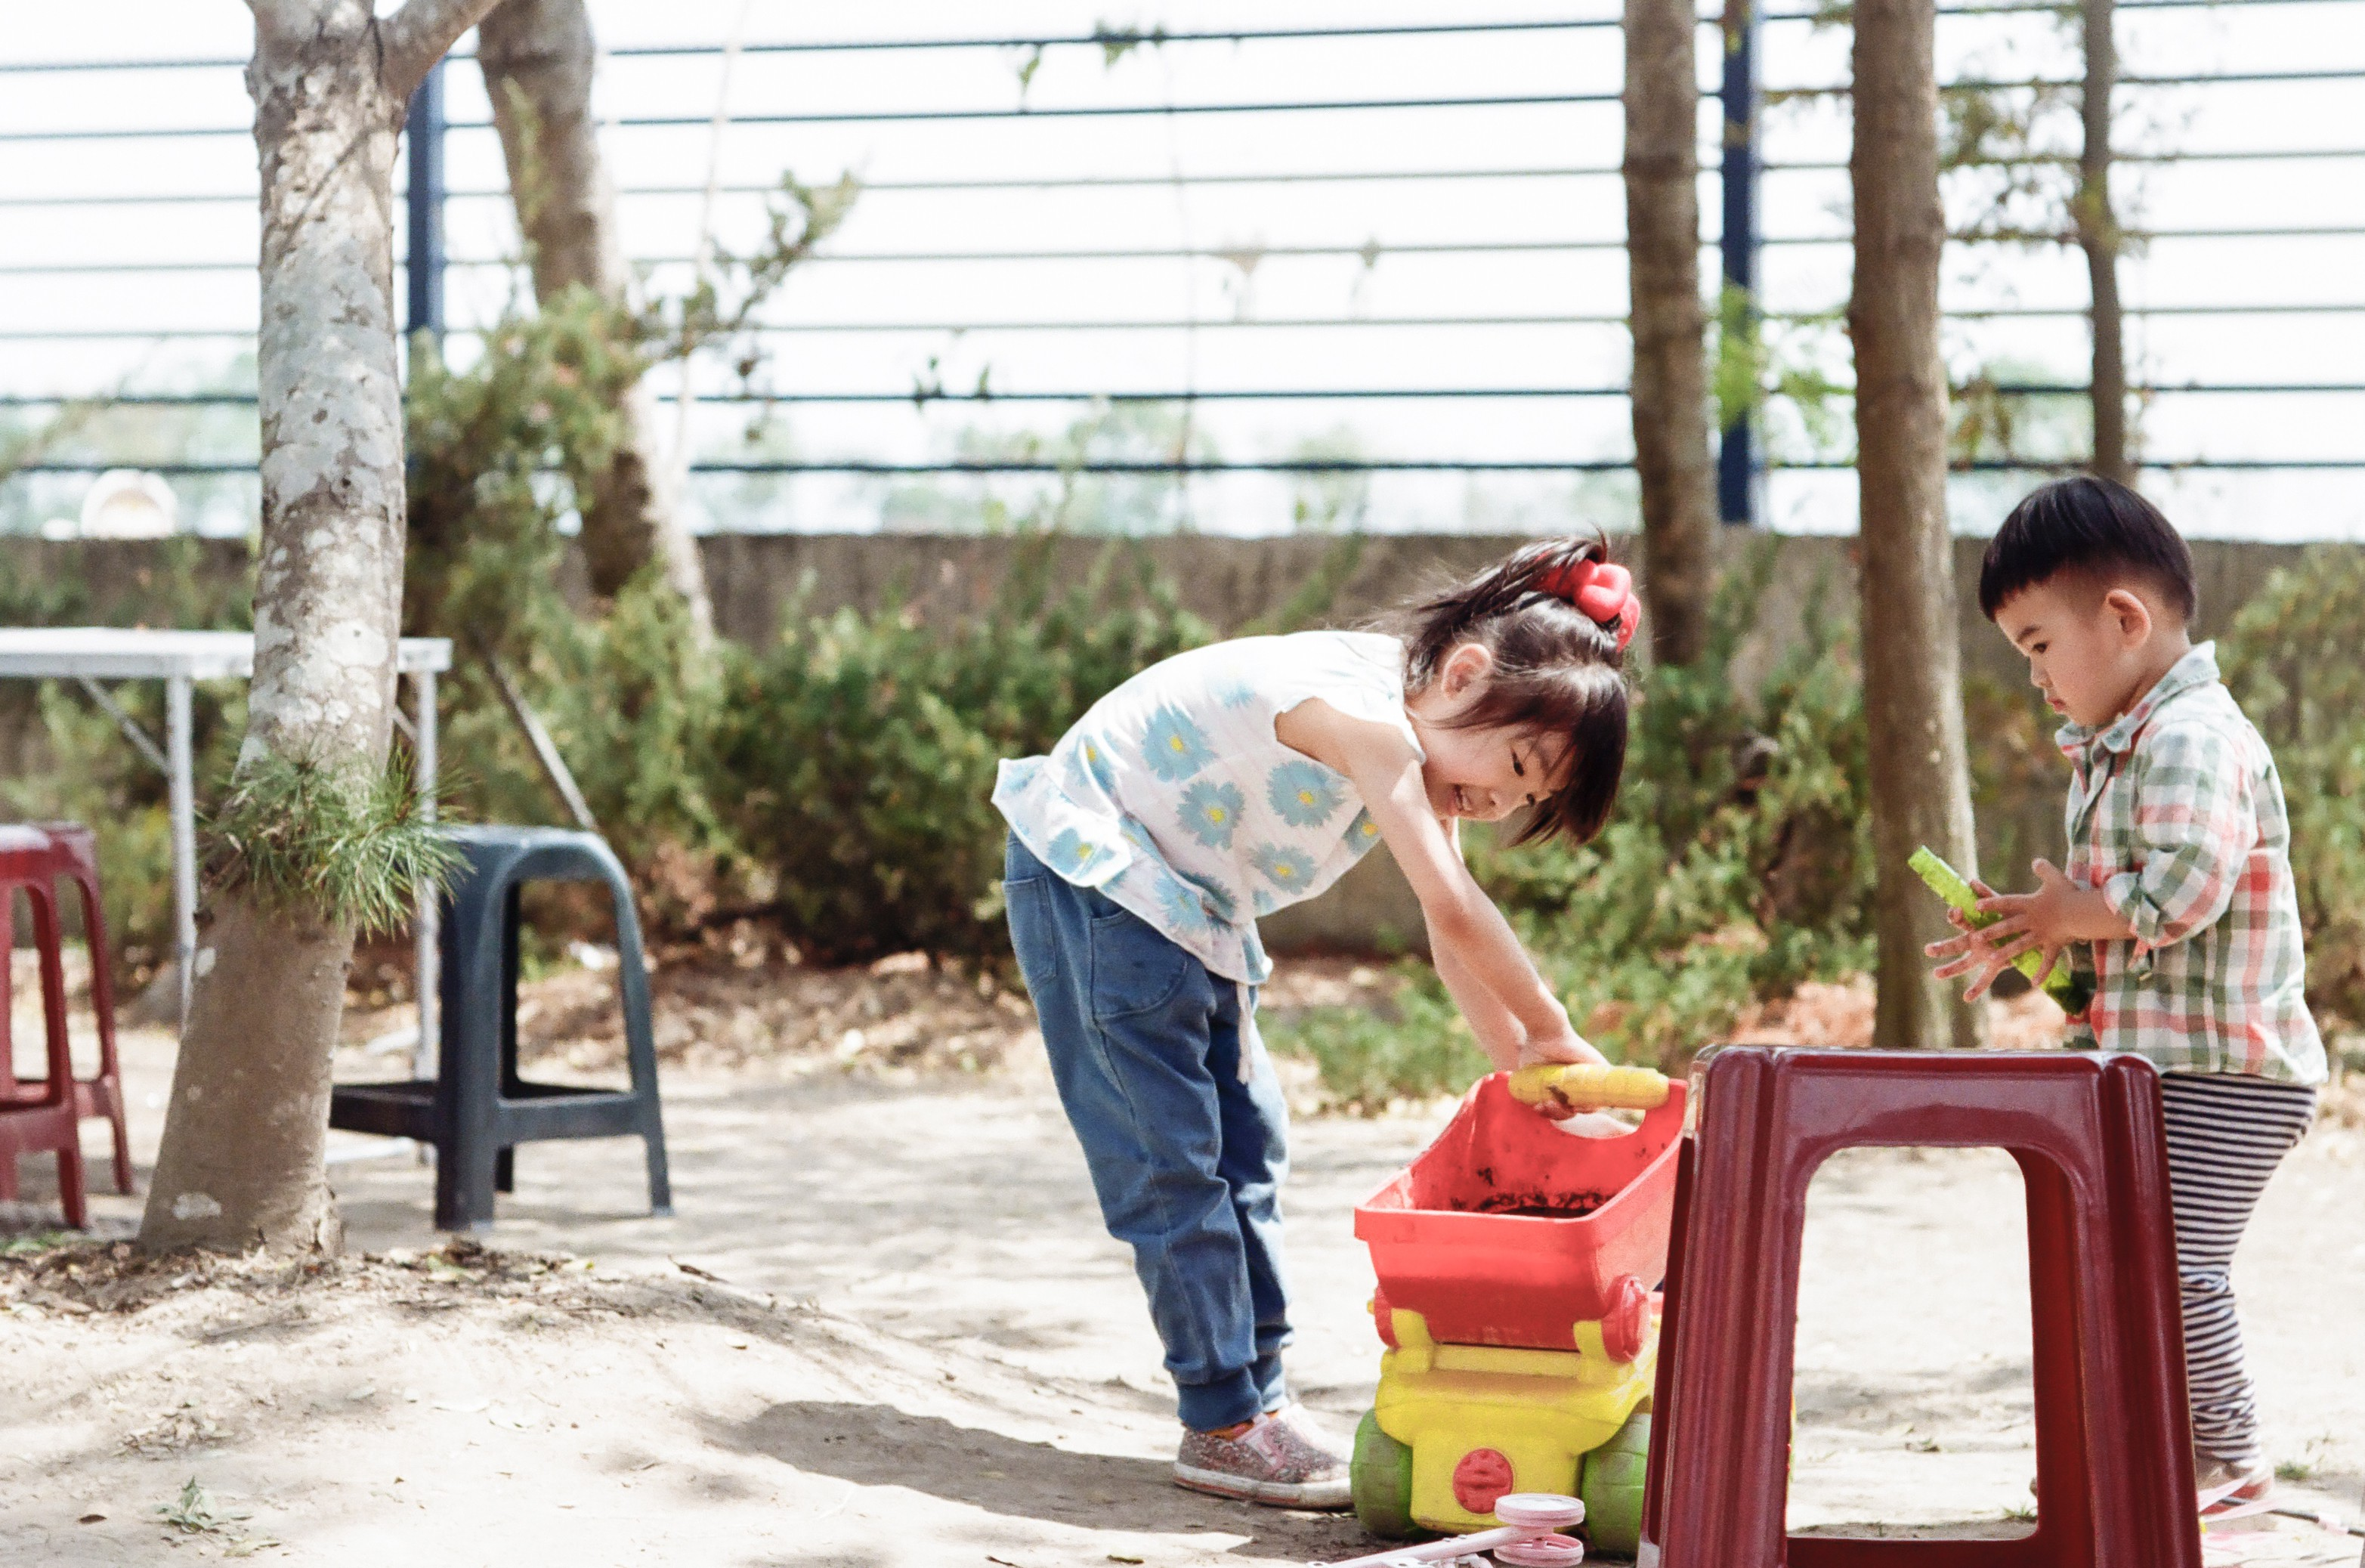 Two small children playing with a truck in a sandpit